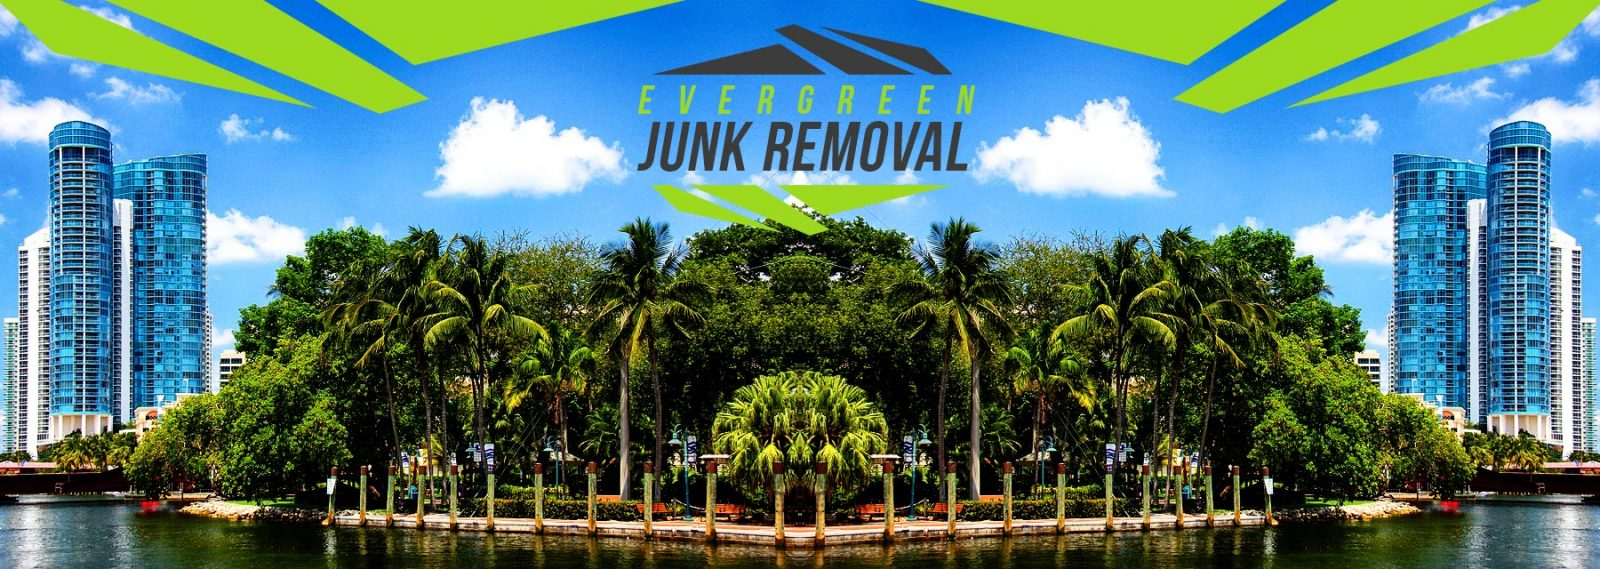 Cutler Bay Hot Tub Removal Company